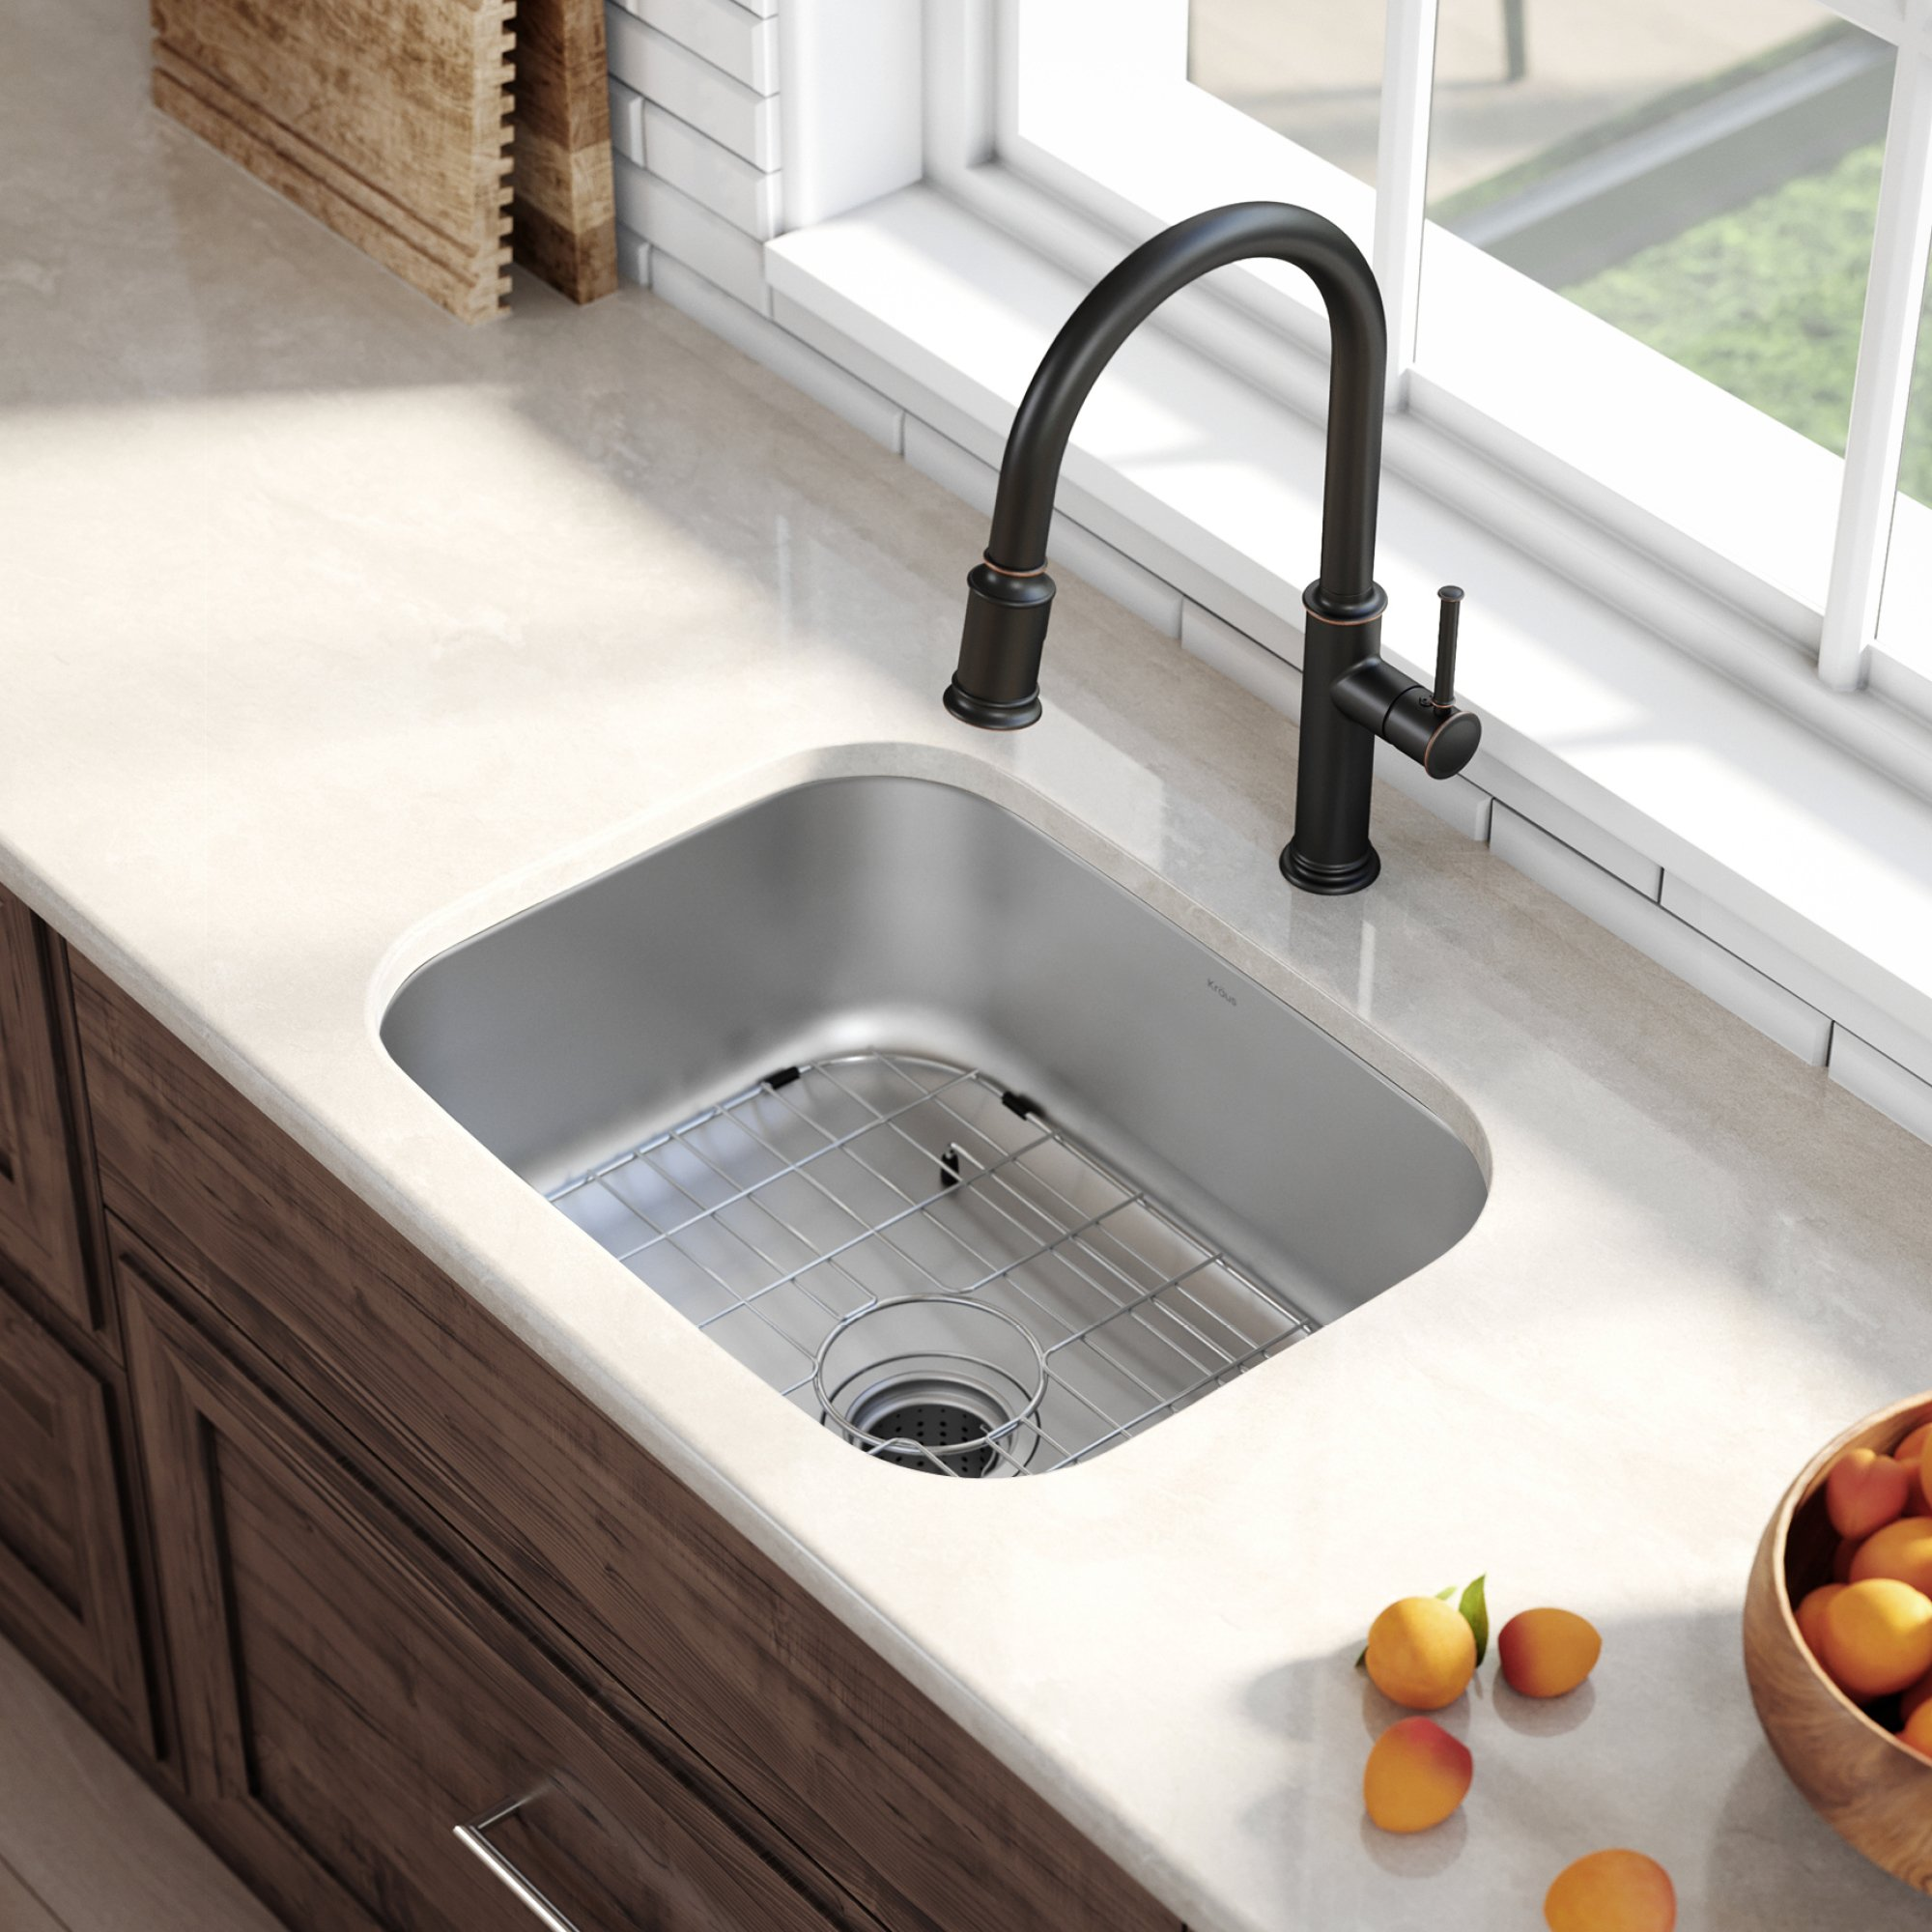 Kraus KBU12 23 inch Undermount Single Bowl 16 gauge Stainless Steel Kitchen Sink by Kraus (Image #3)